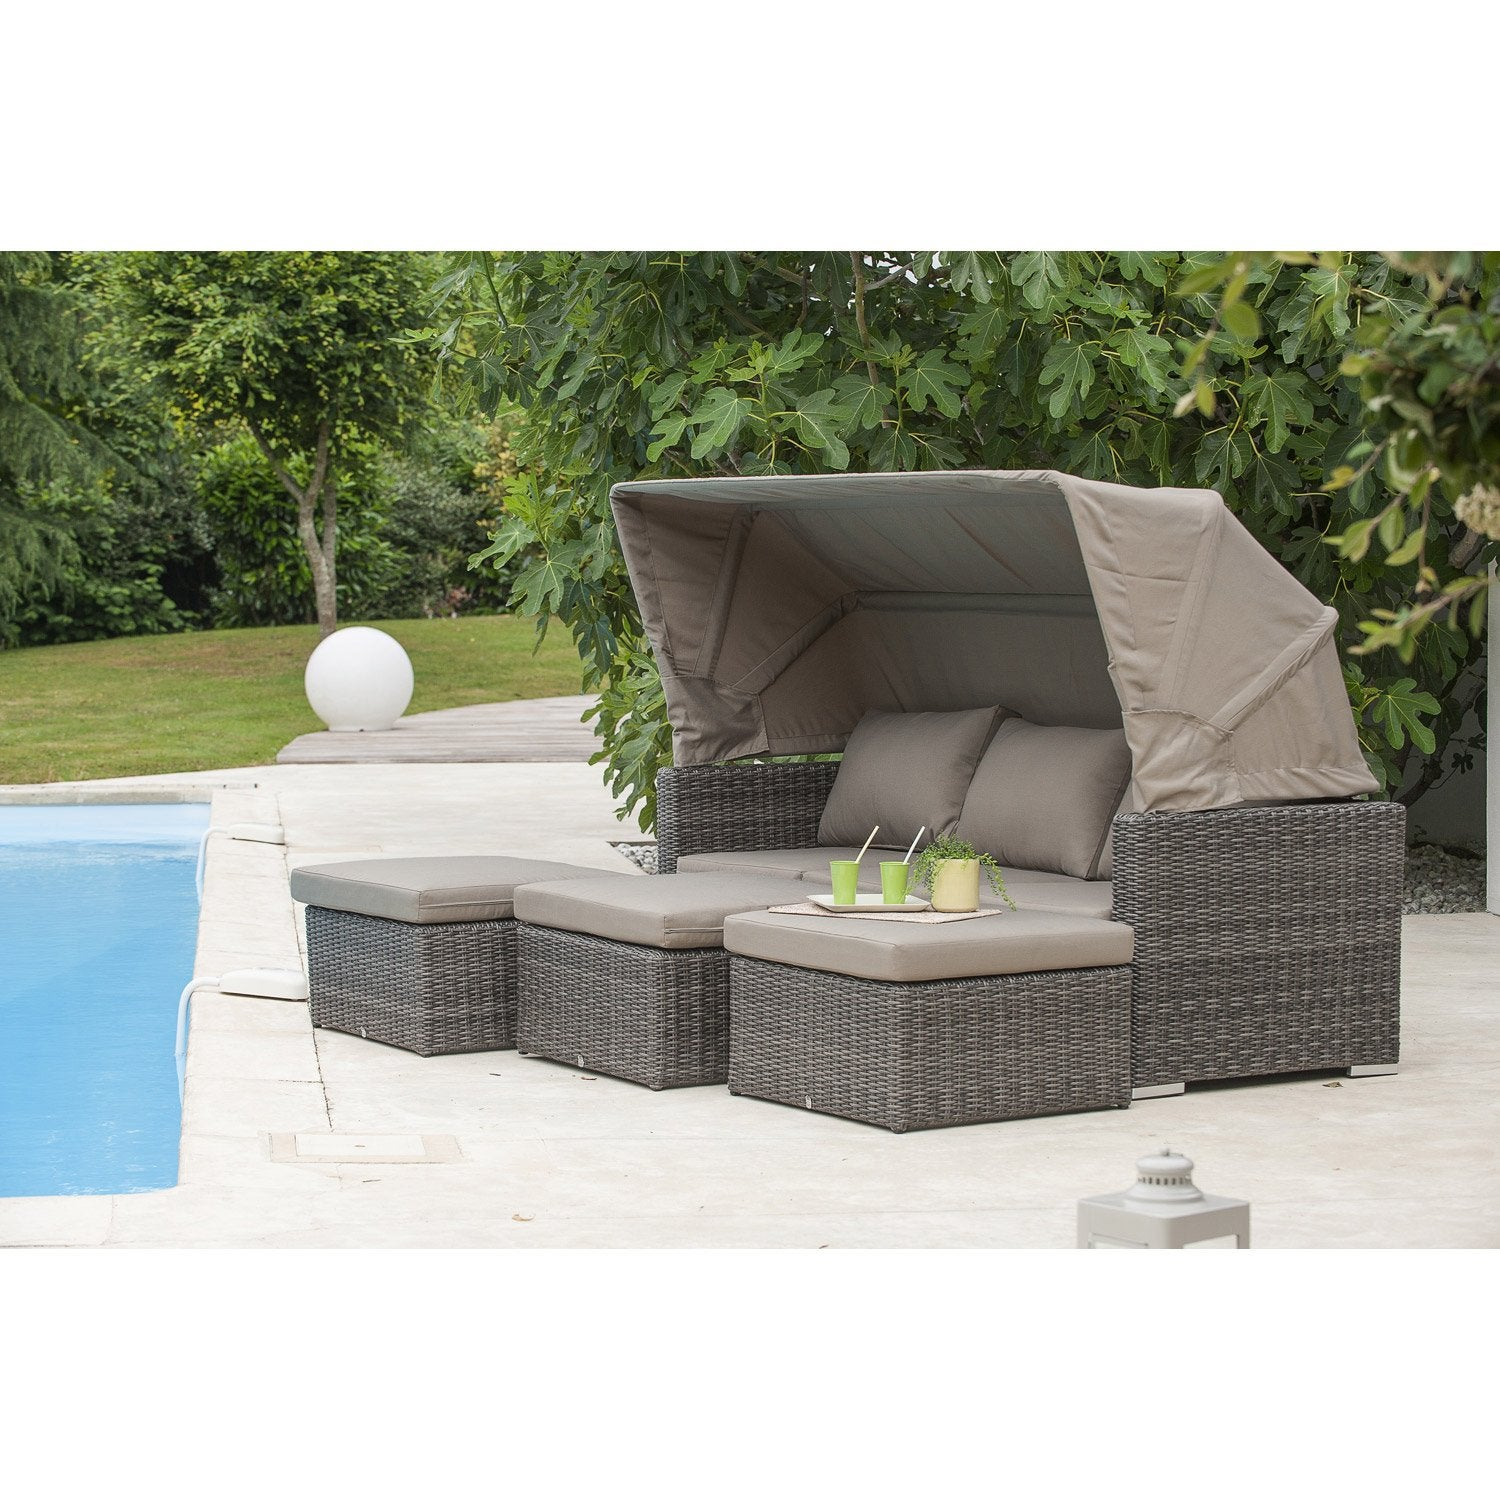 Salon bas de jardin caleche r sine tress e gris anthracite for Table et chaise de jardin en resine tressee gris